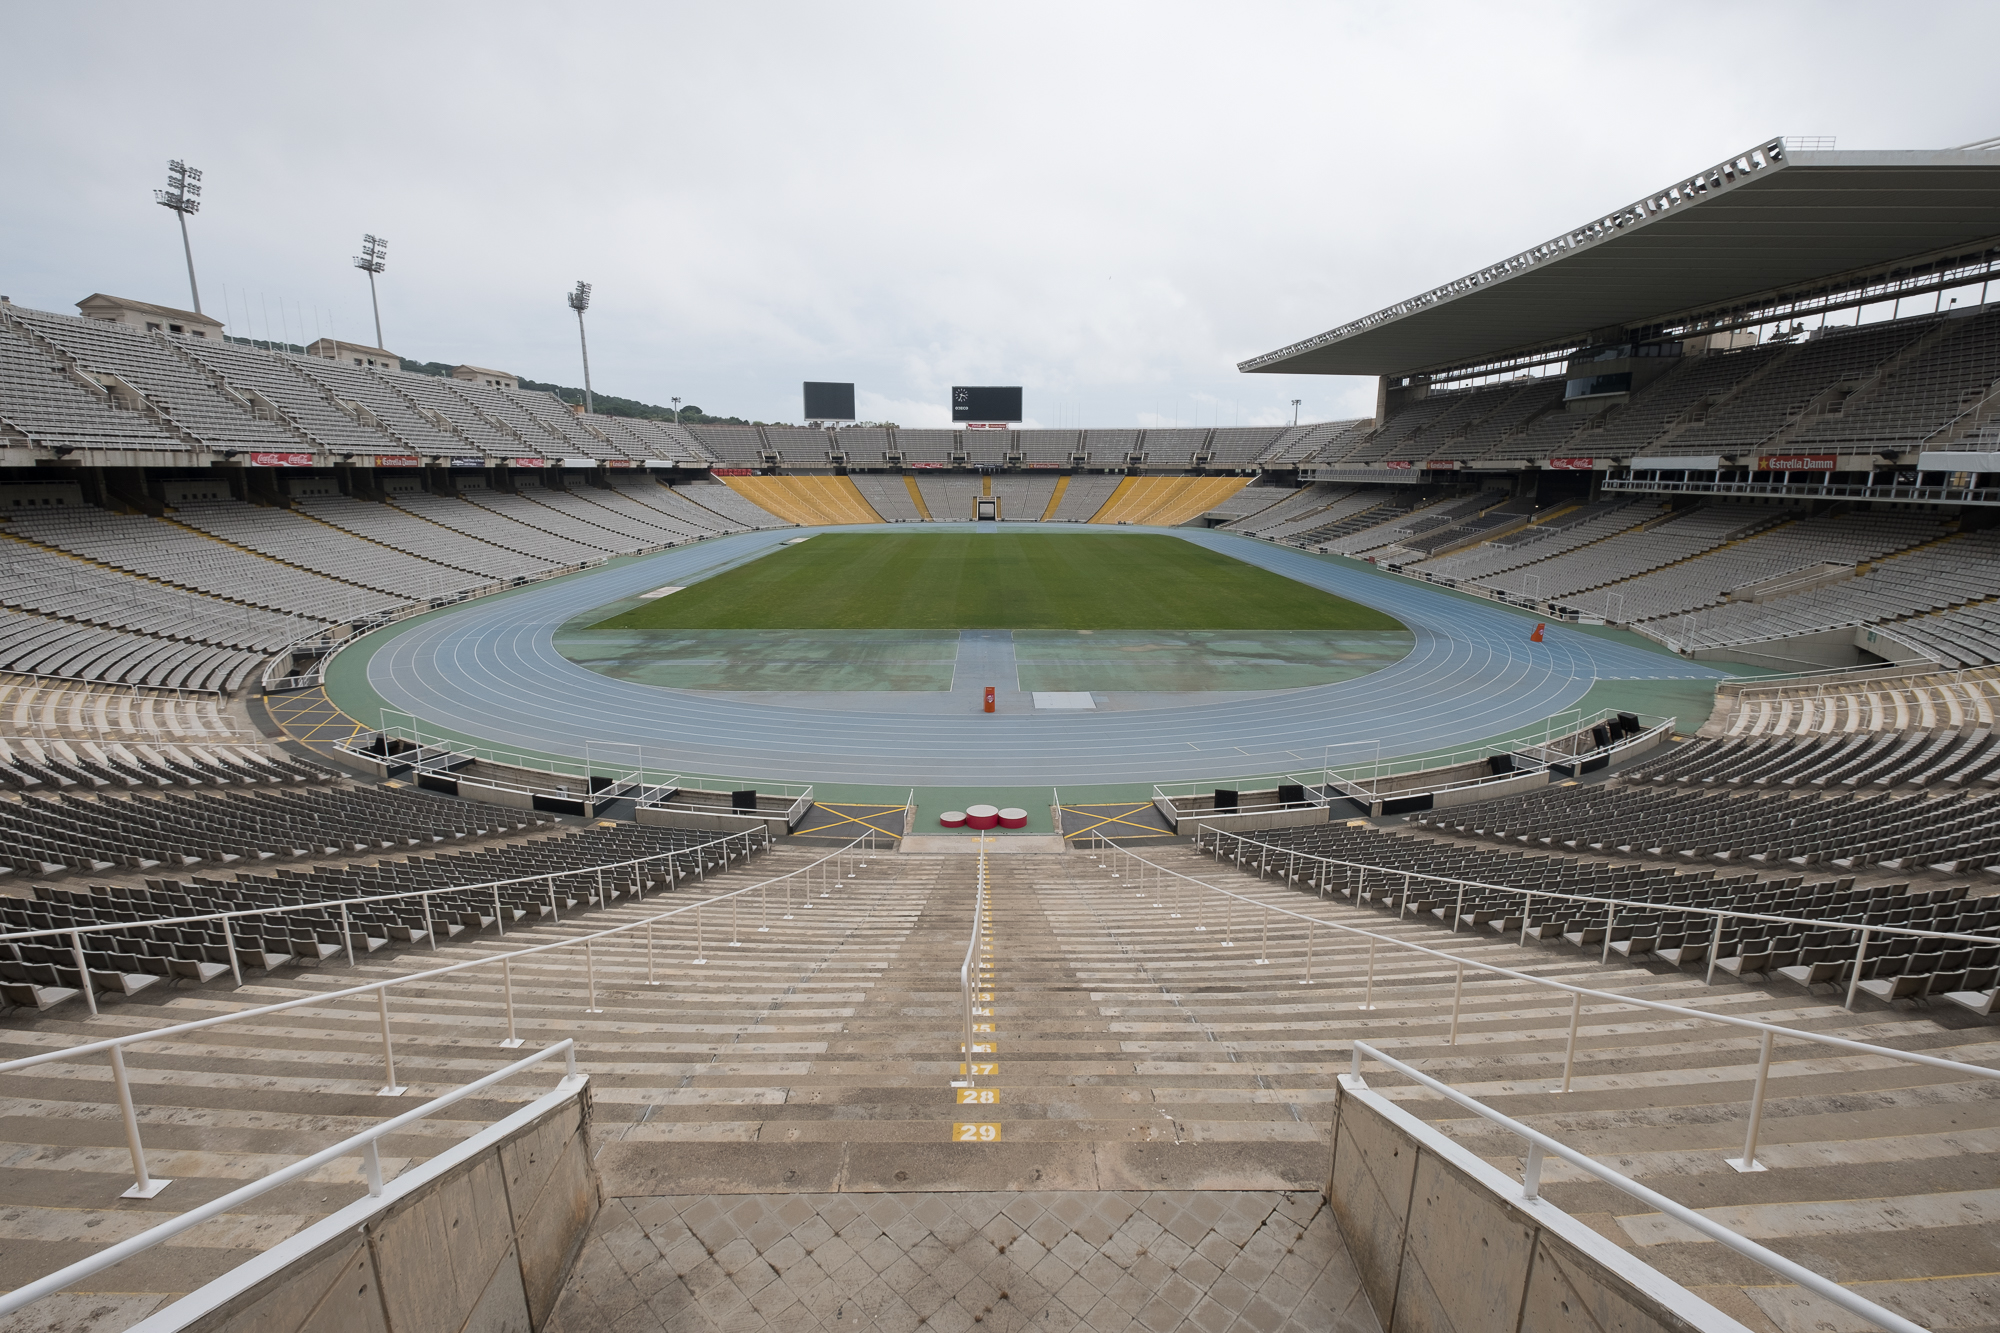 A photo of the olympic stadium in Barcelona. The photo is taken from one end, looking in to the main arena. There are seats all around and the playing field in the centre.